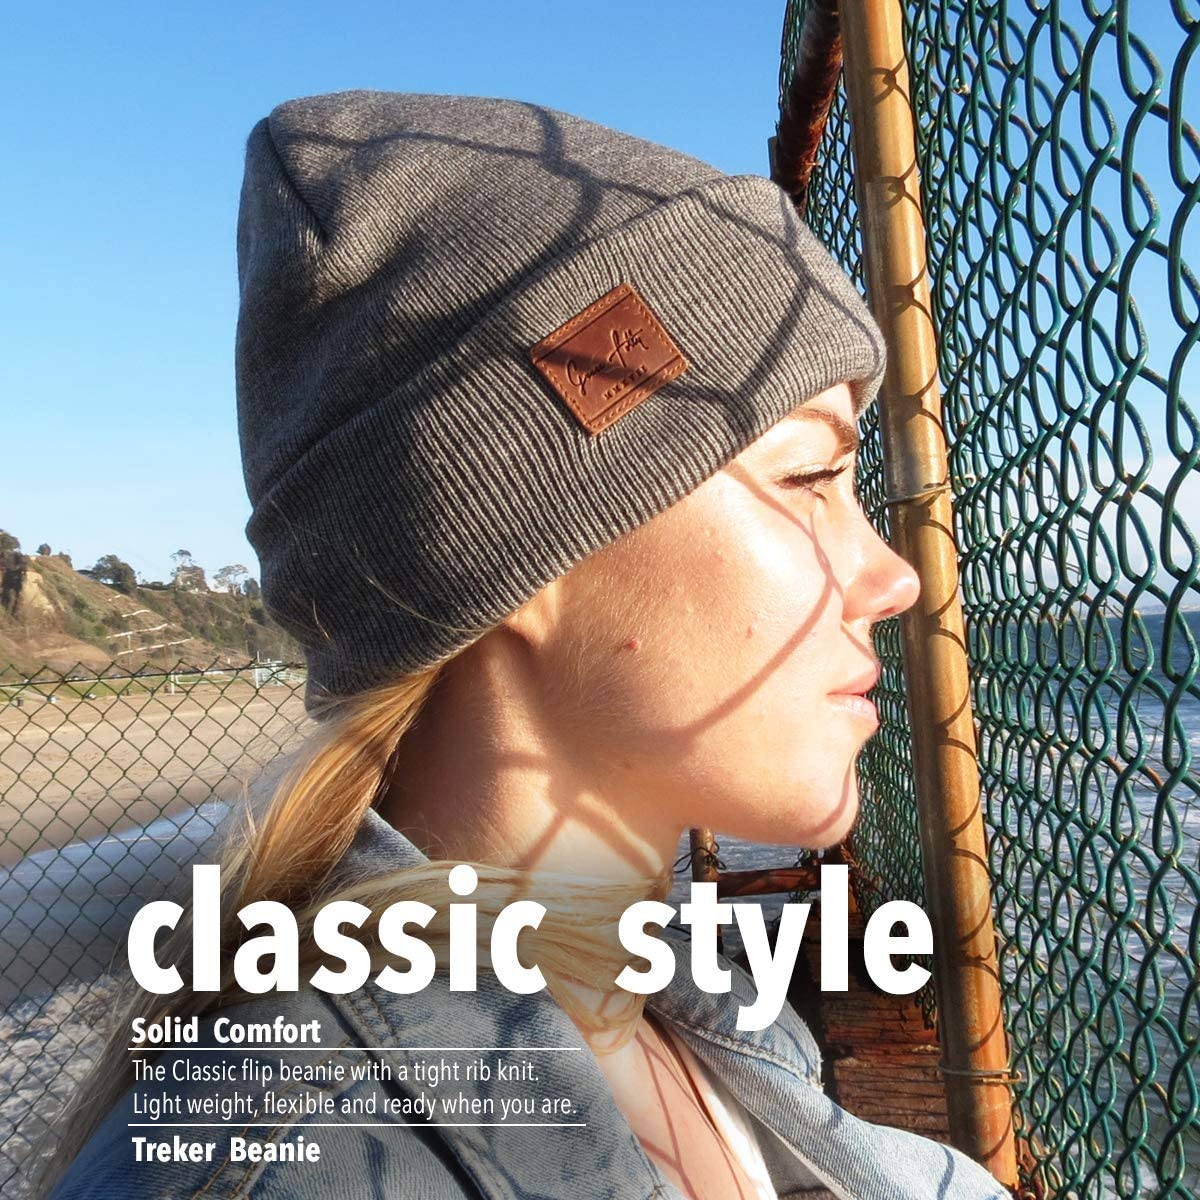 Cuffed Acrylic Hat Beanies With Matching Keychain Grace Folly Fold Up Beanie